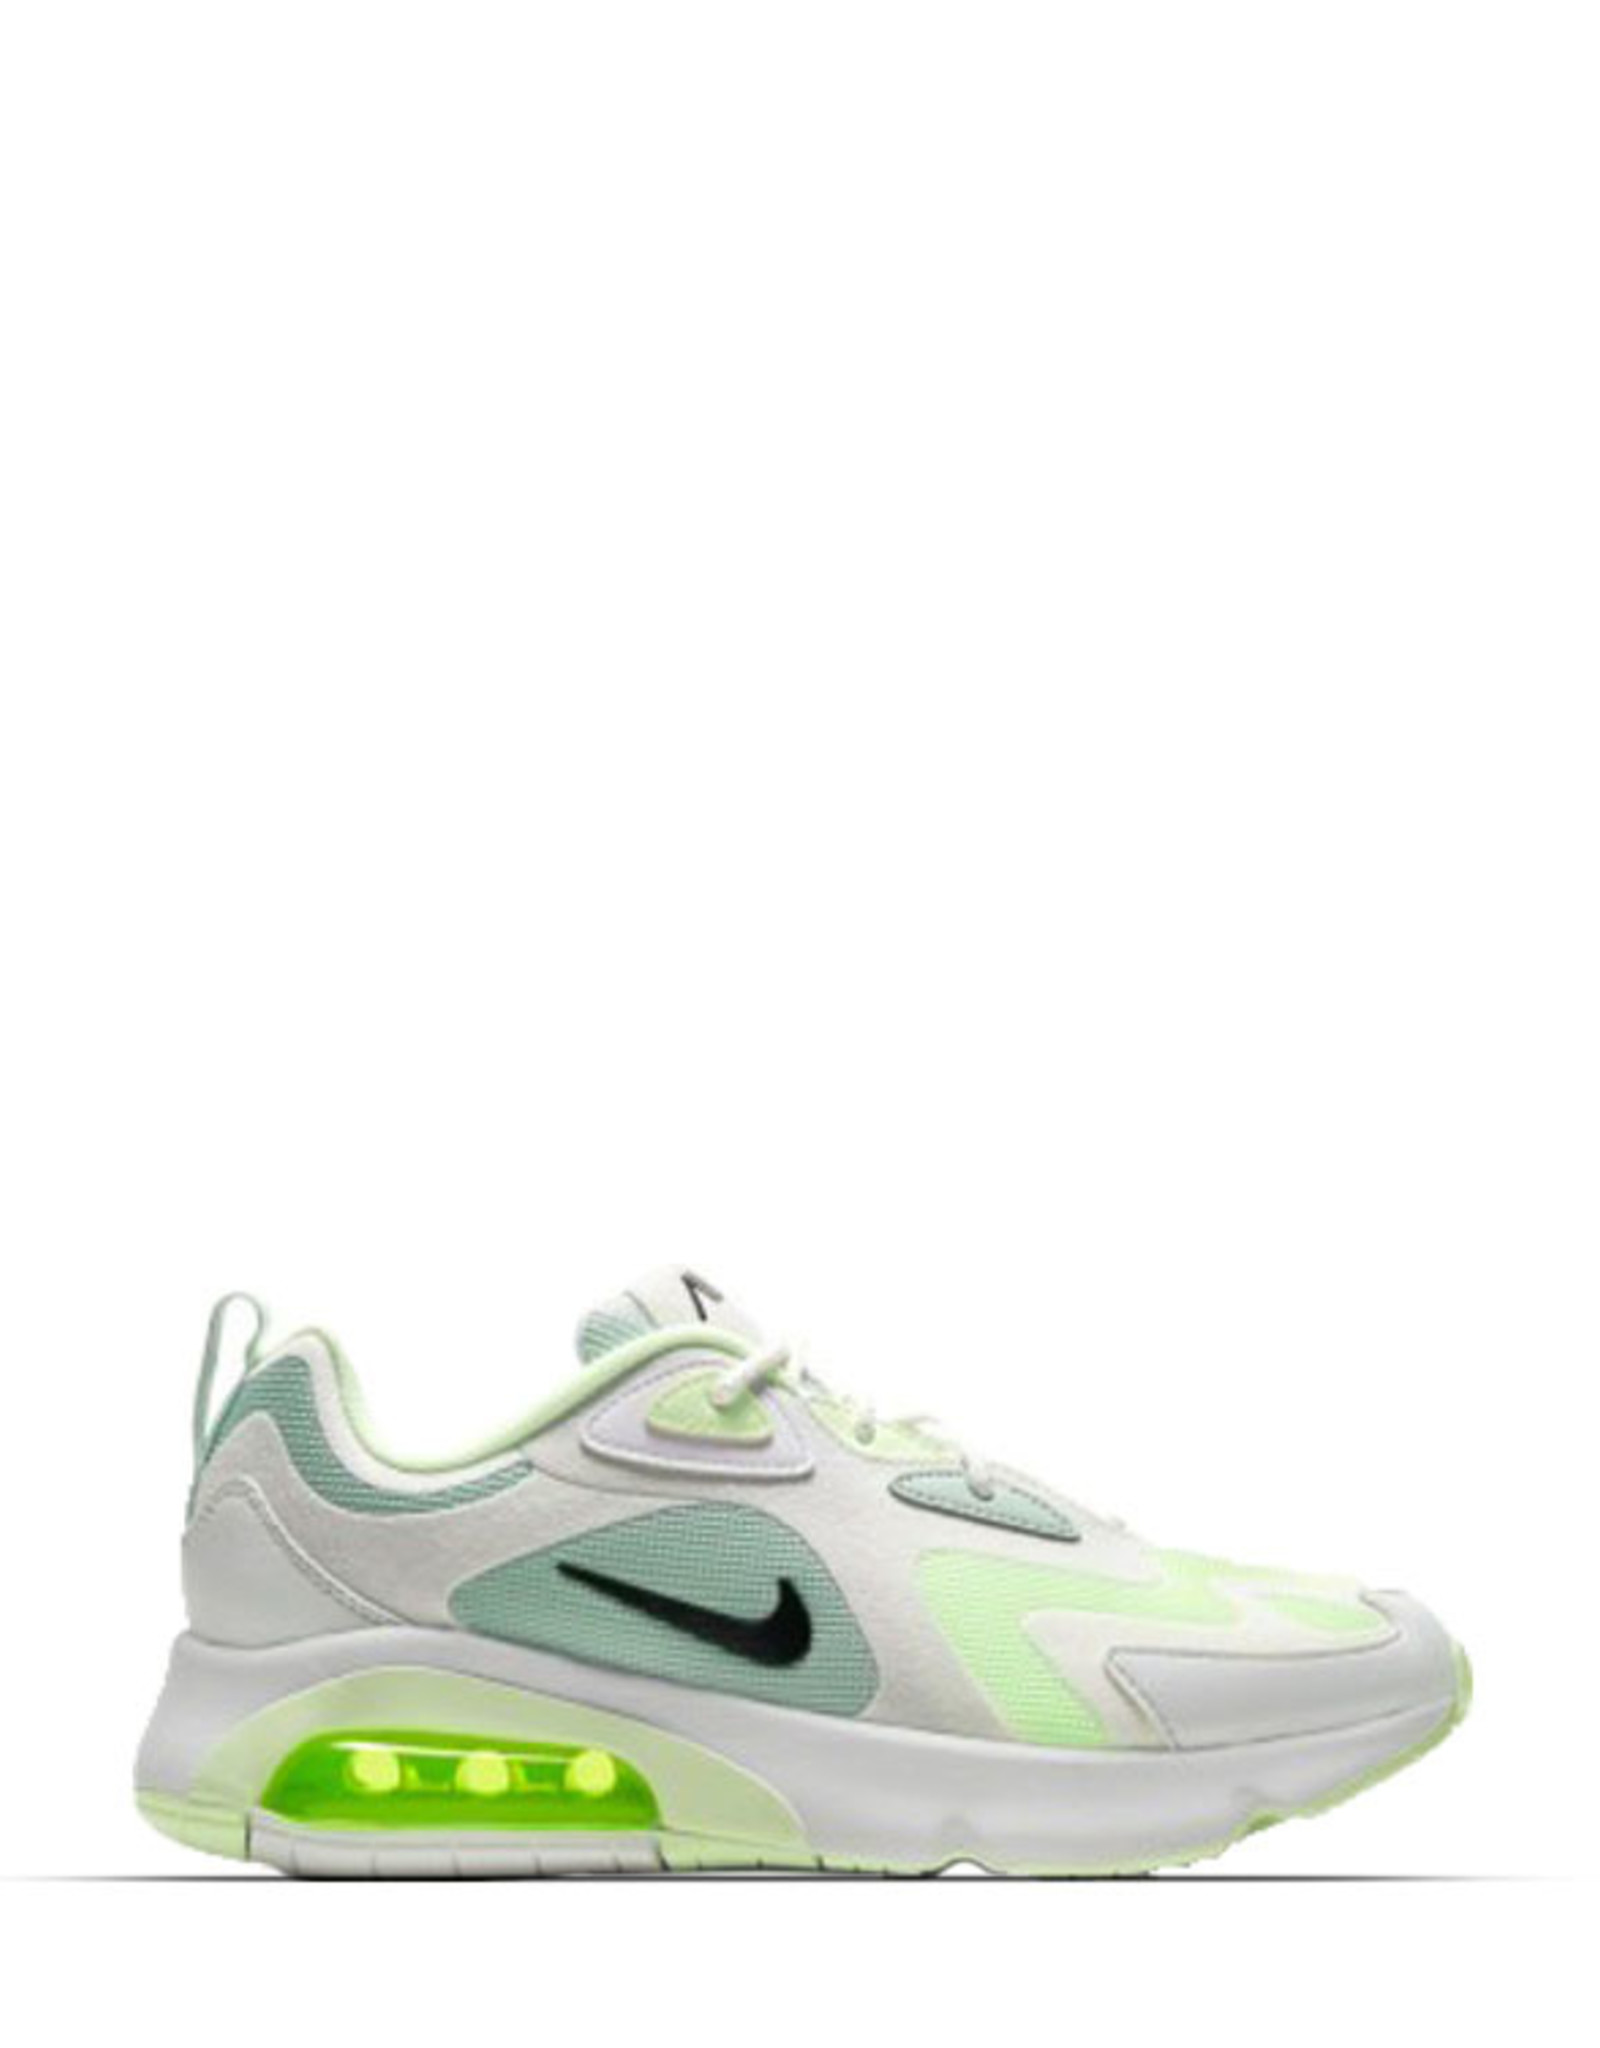 NIKE AIR MAX 200 PISTACHIO FROST